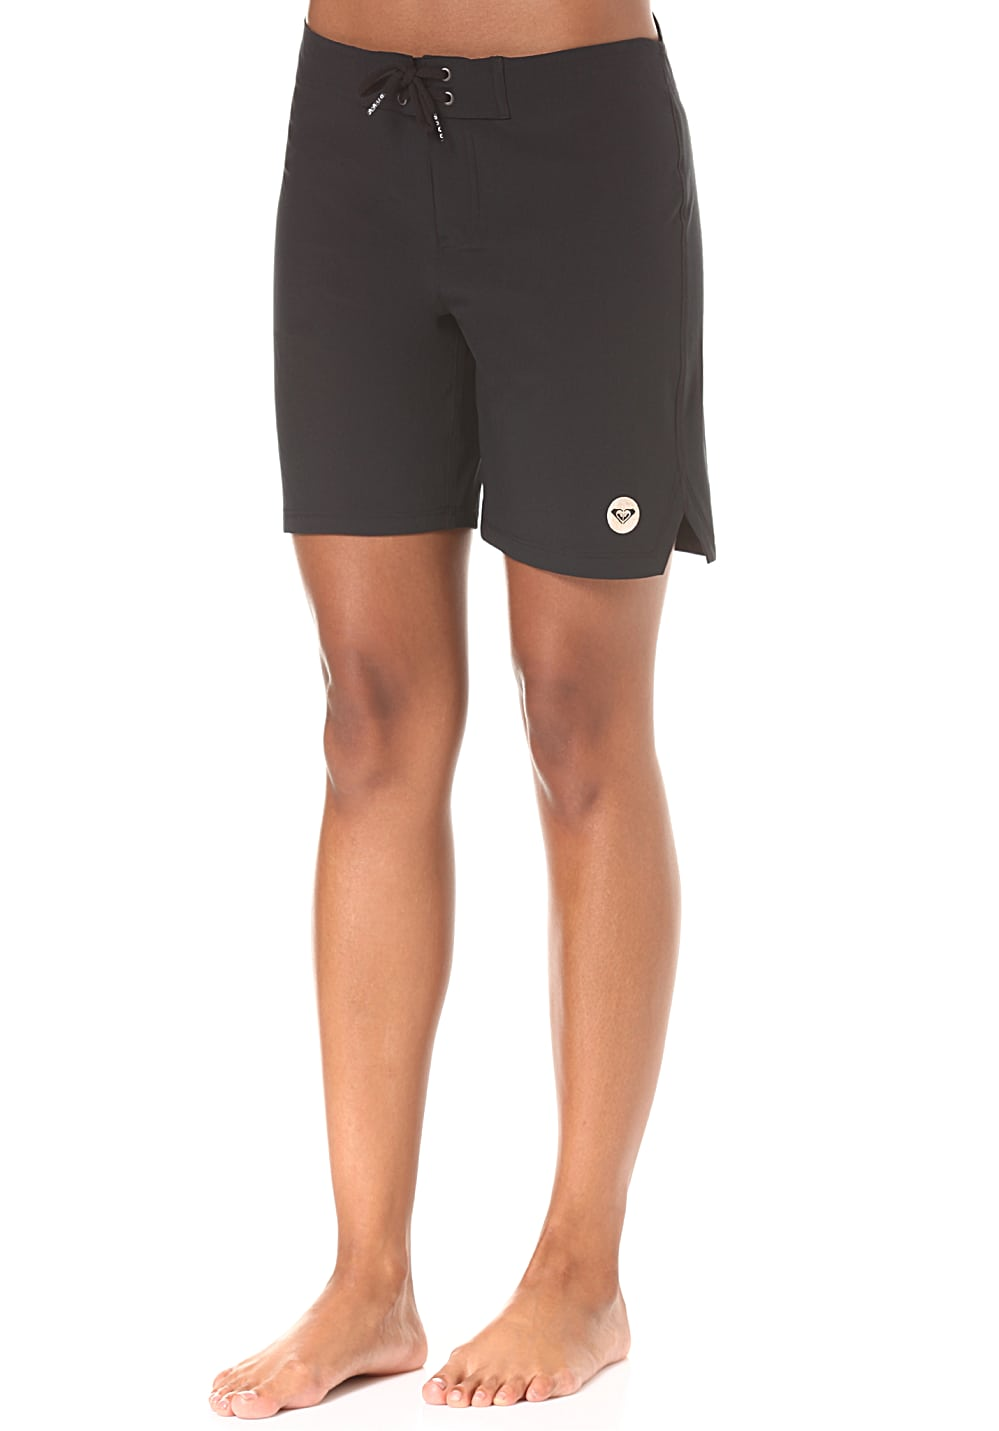 Bademode - Roxy To Tye 7 Boardshorts für Damen Schwarz  - Onlineshop Planet Sports